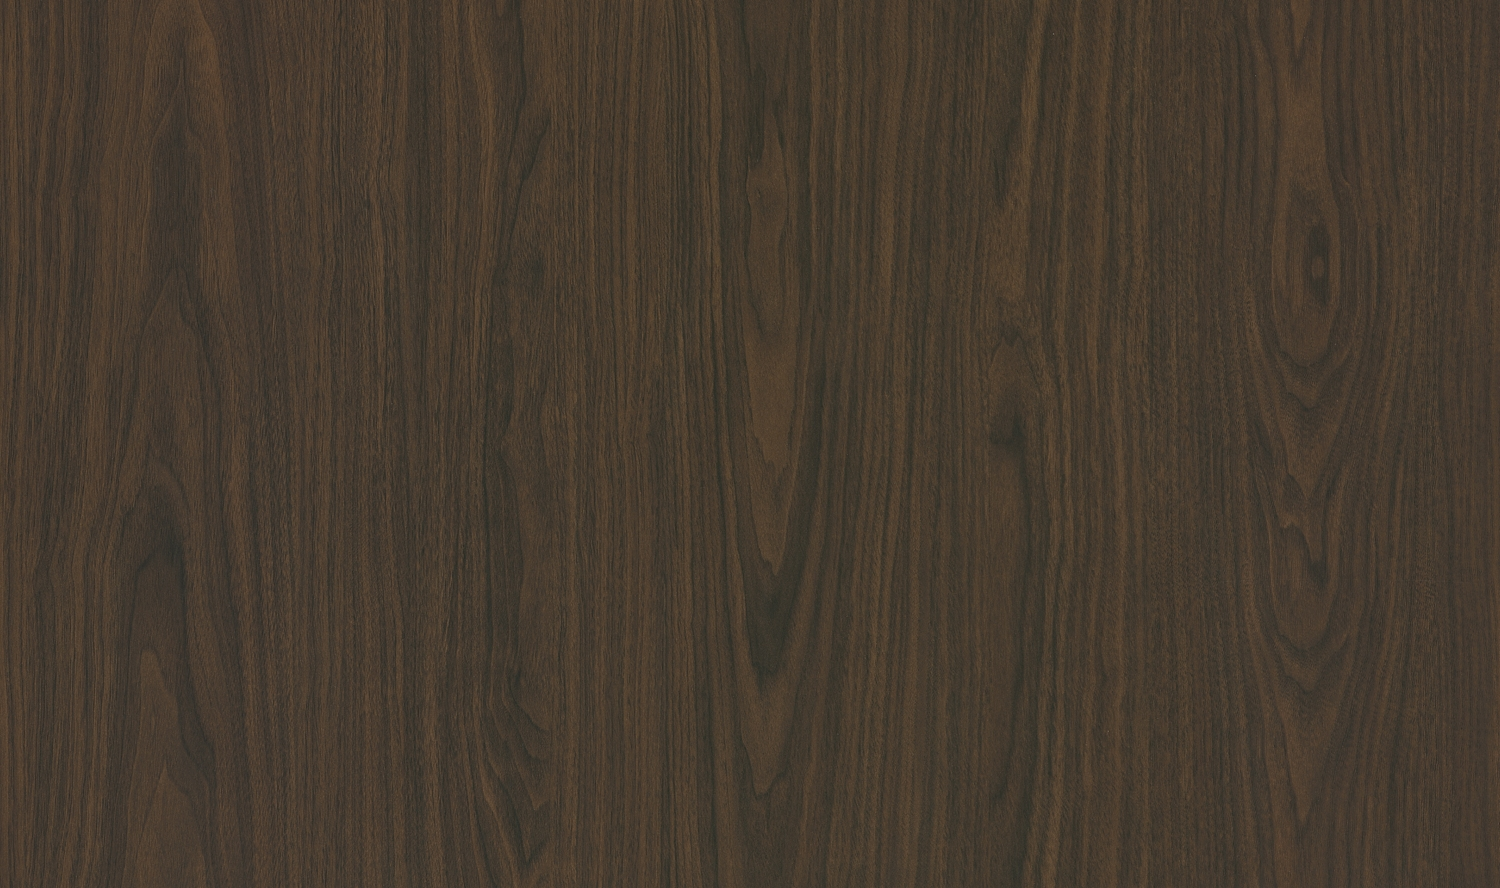 North Supreme, South Supreme Laminates For Kitchen-Sundek International